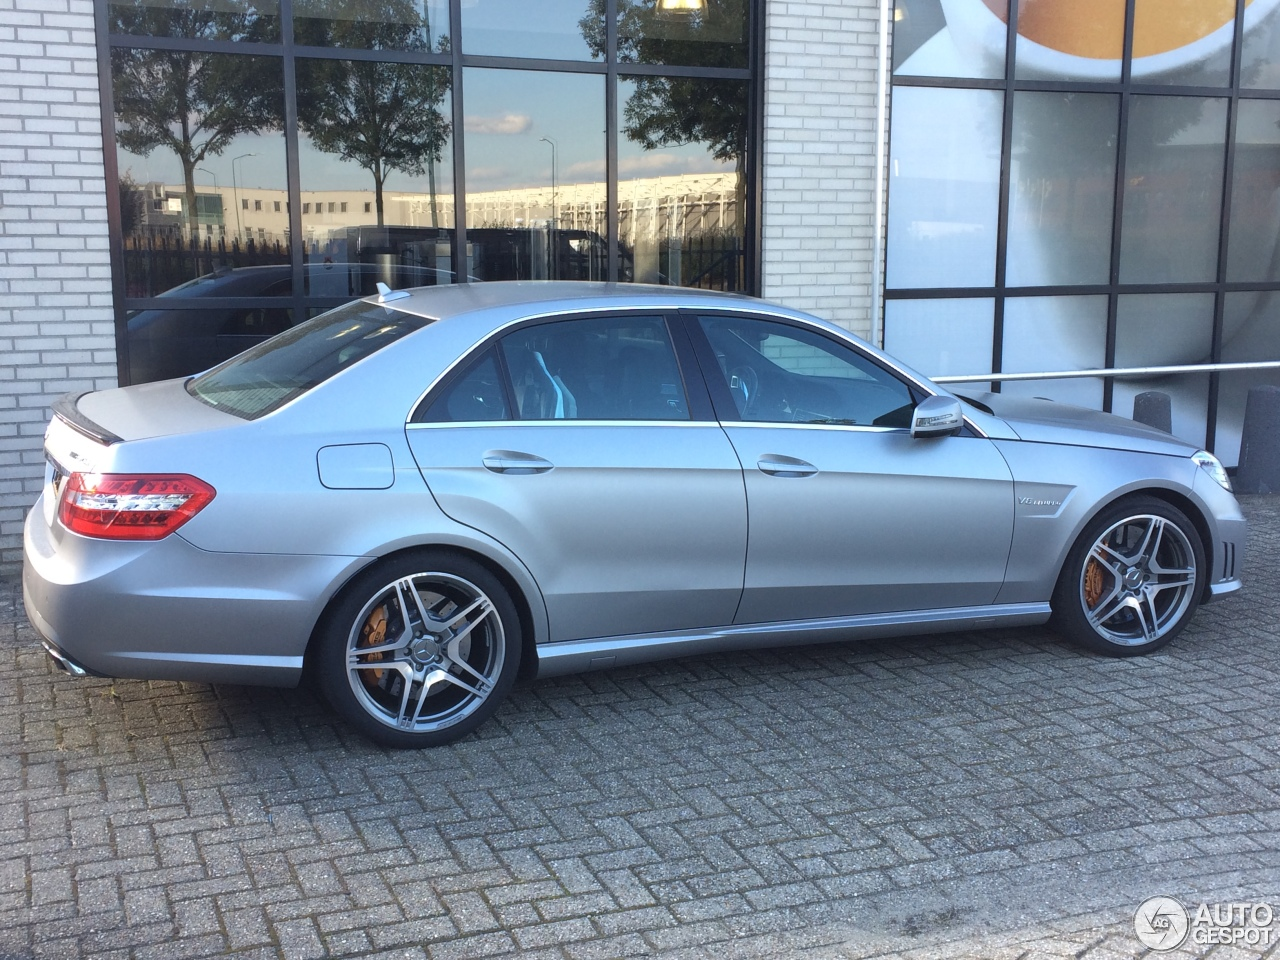 Mercedes benz e 63 amg w212 v8 biturbo 4 october 2016 for Mercedes benz amg v8 biturbo